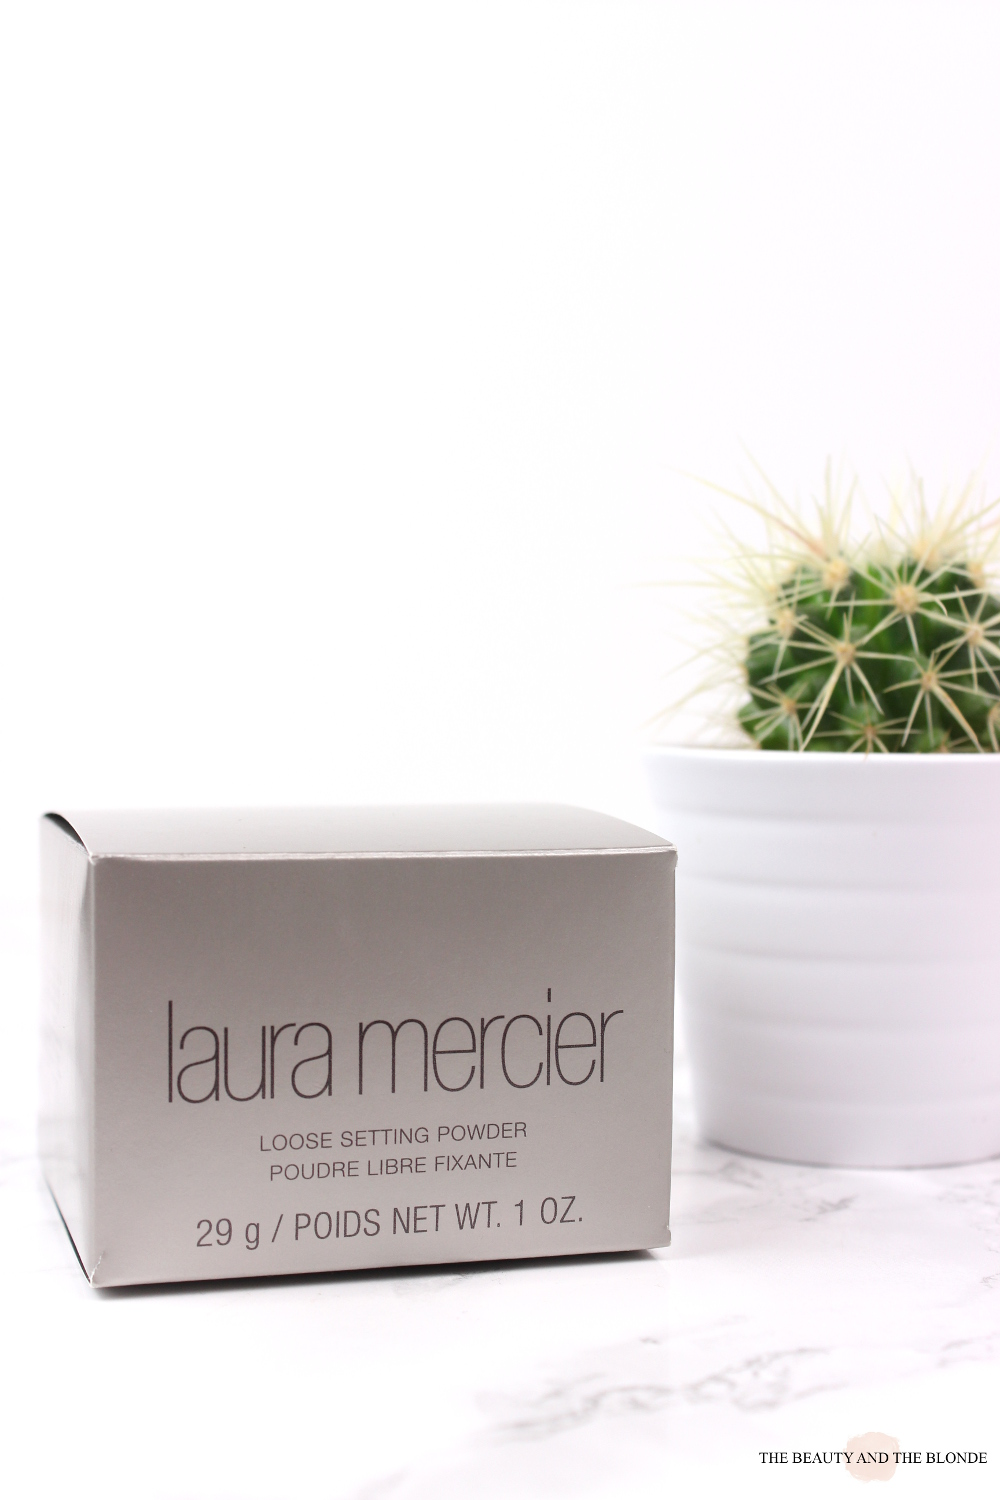 Worth the hype, Laura Mercier, Translucent Loose Setting Powder Review